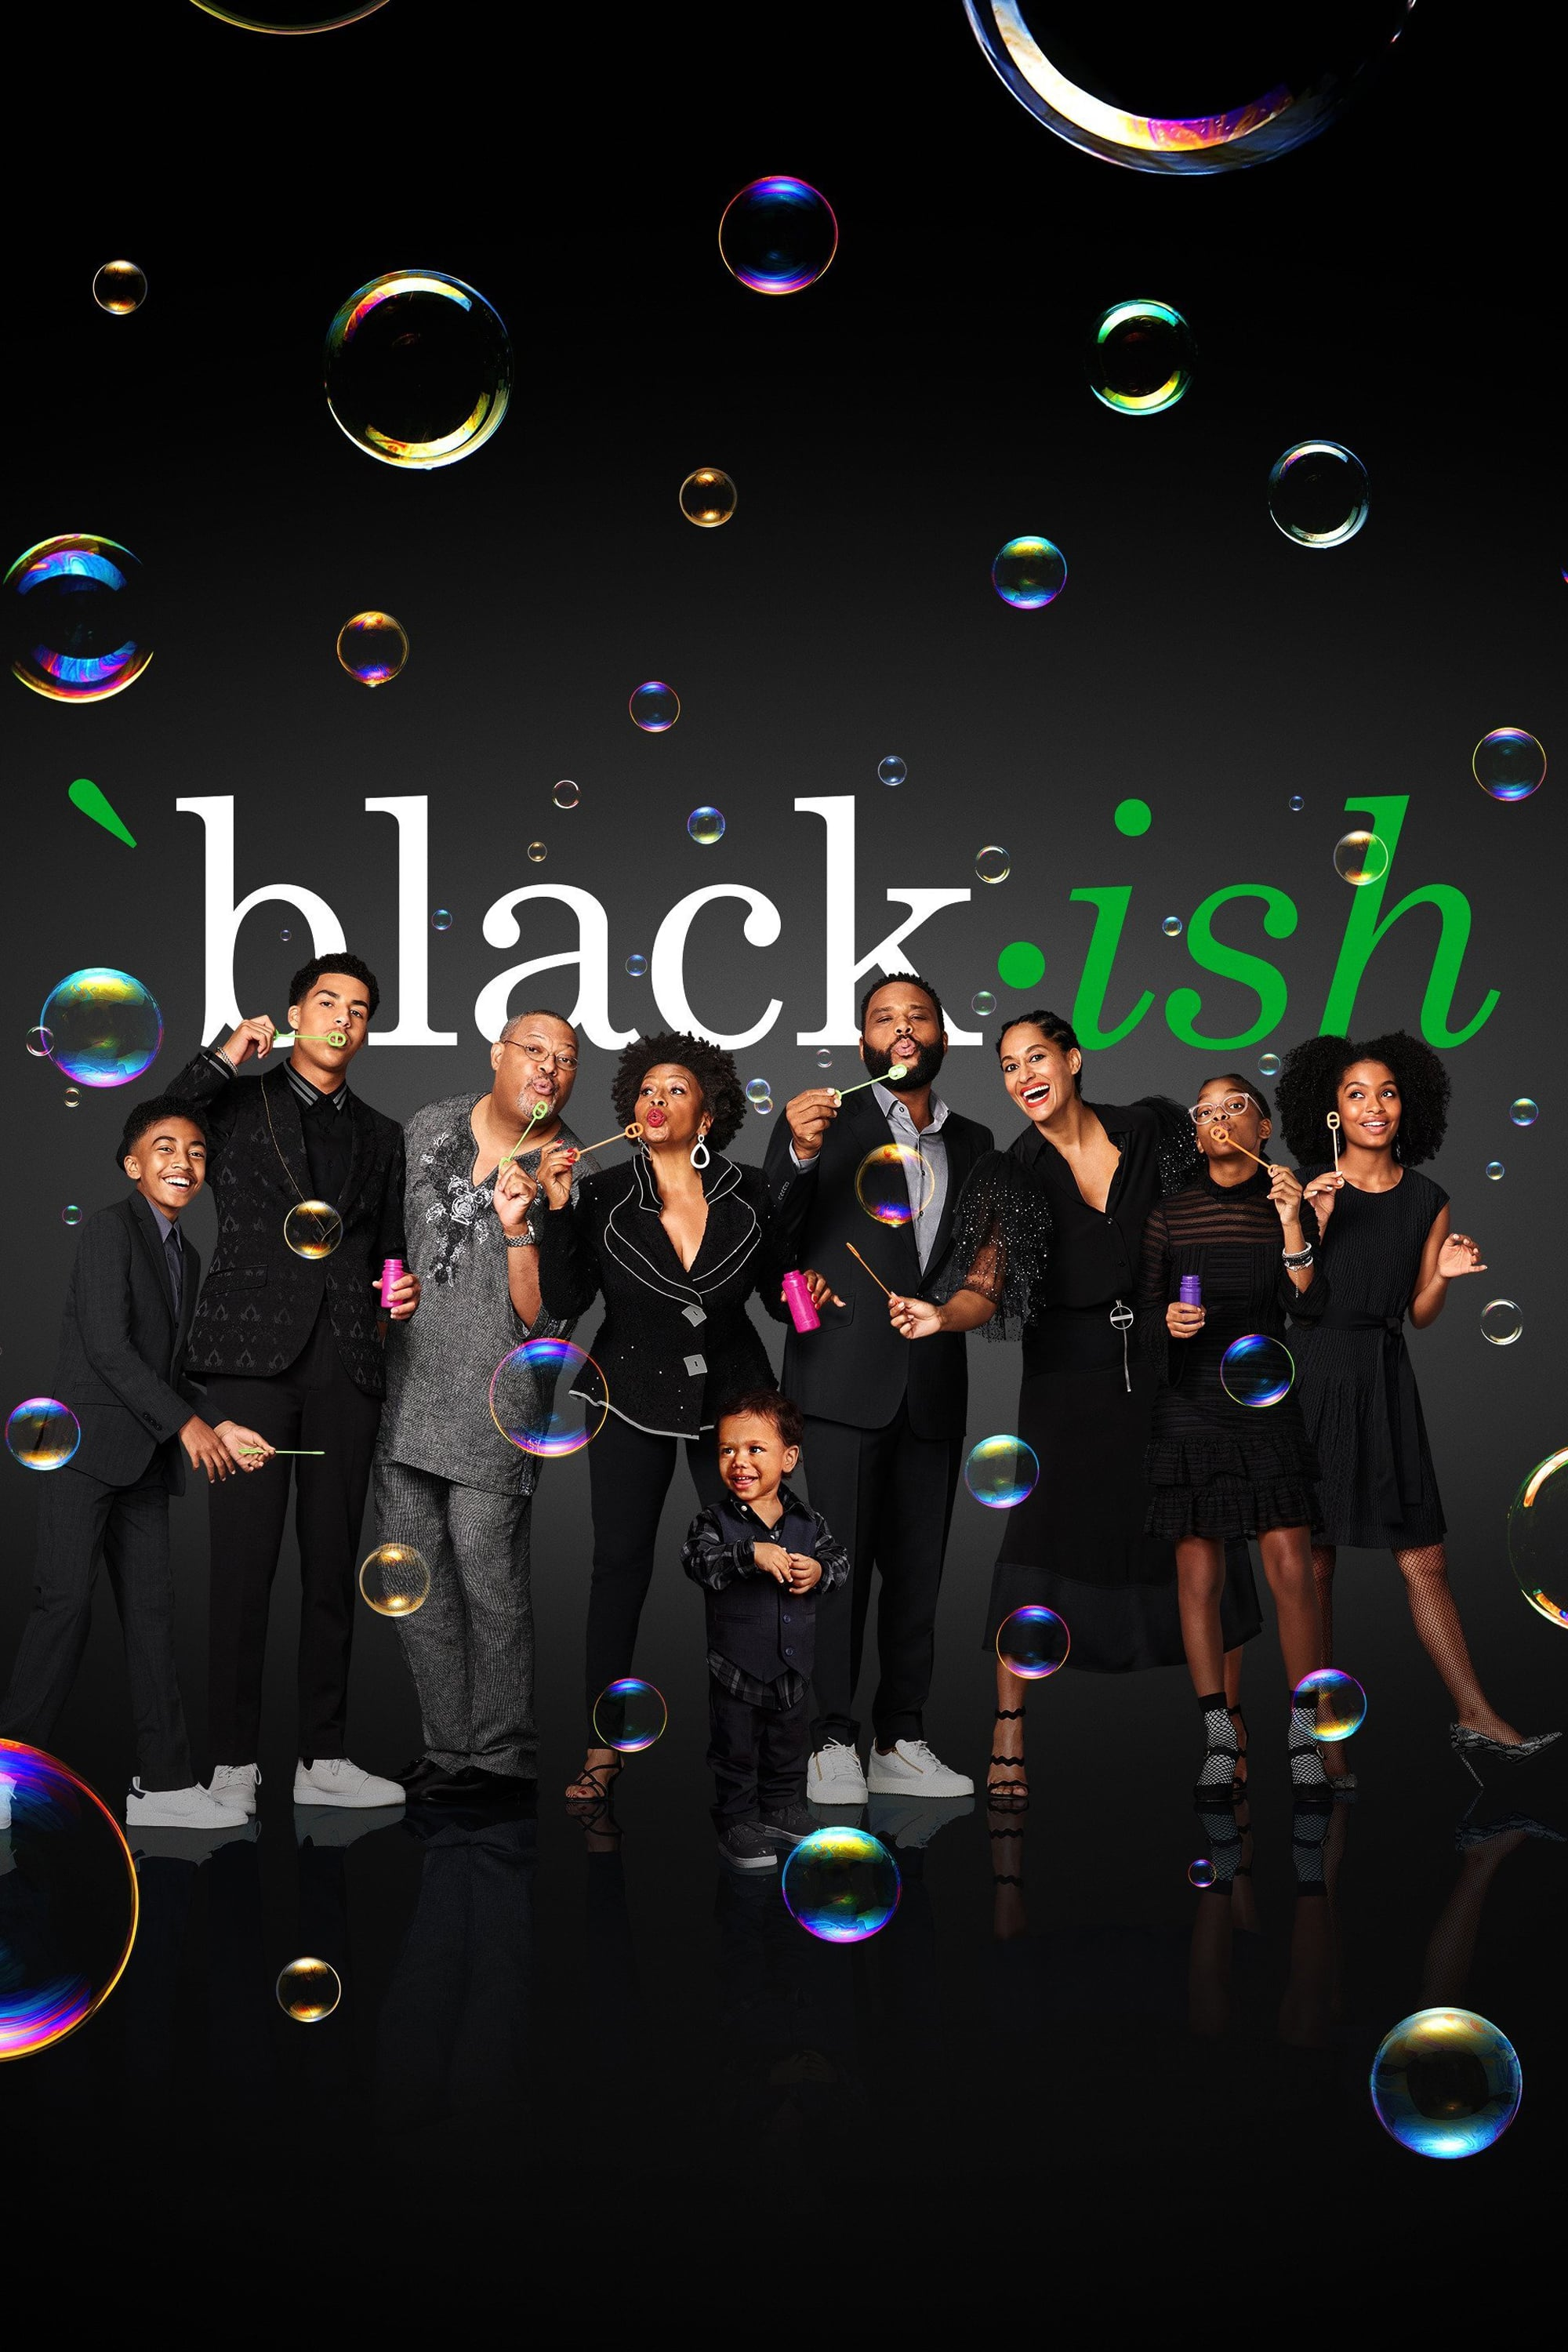 Black-ish (TV Series 2014– ) - IMDb